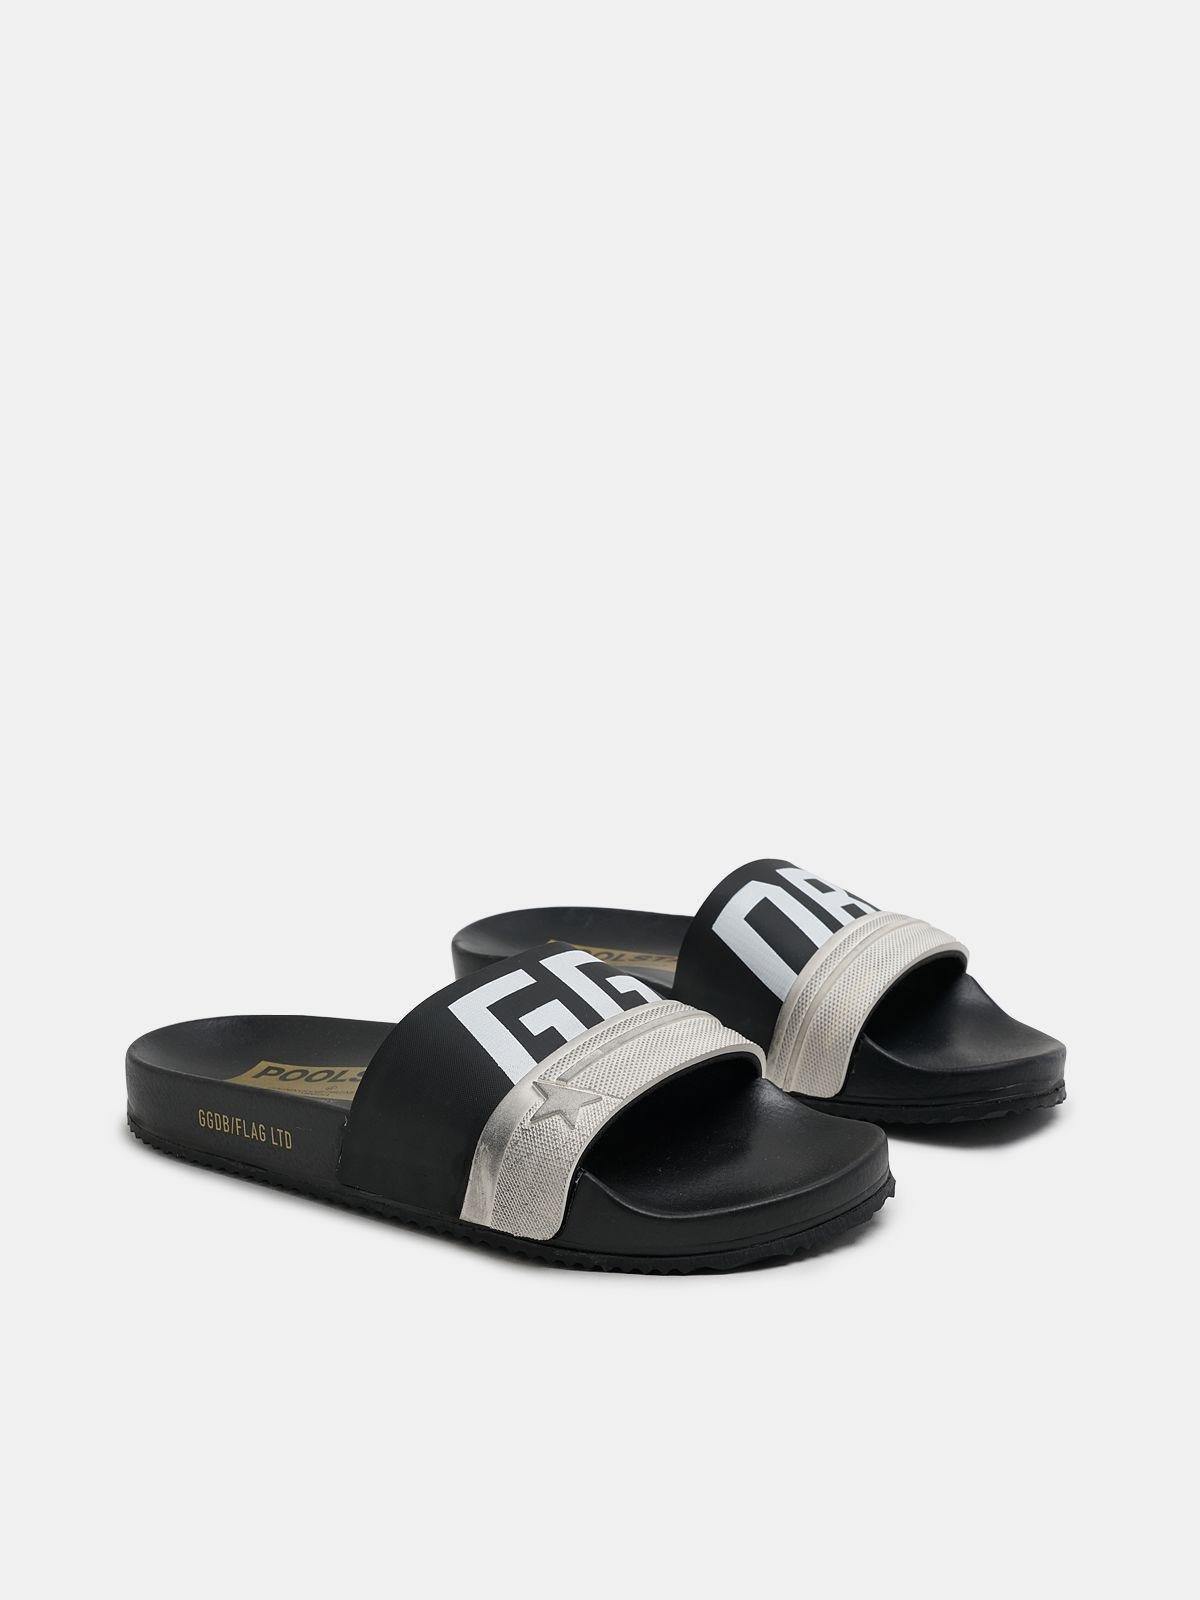 Black Poolstars for women with two-colour strap and logo 2